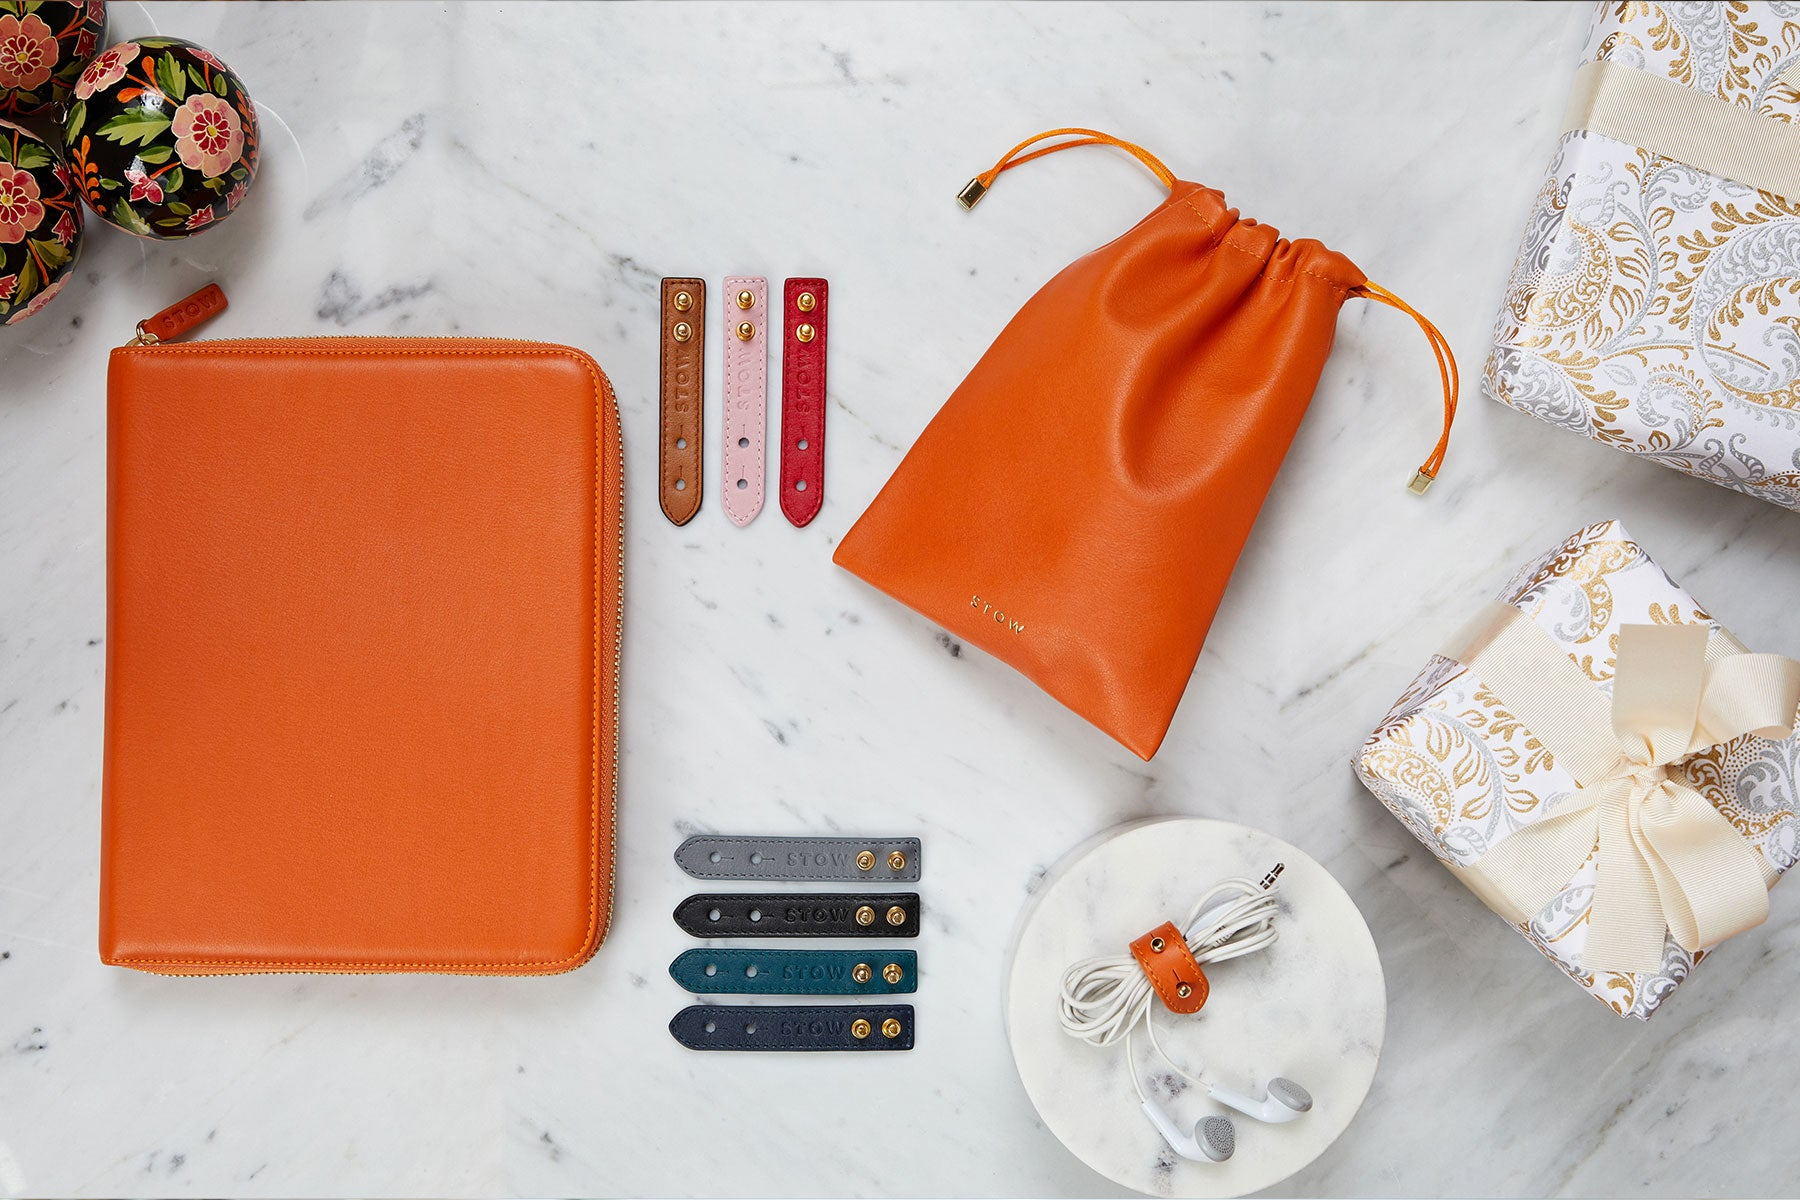 20% off Sitewide + FREE Embossing